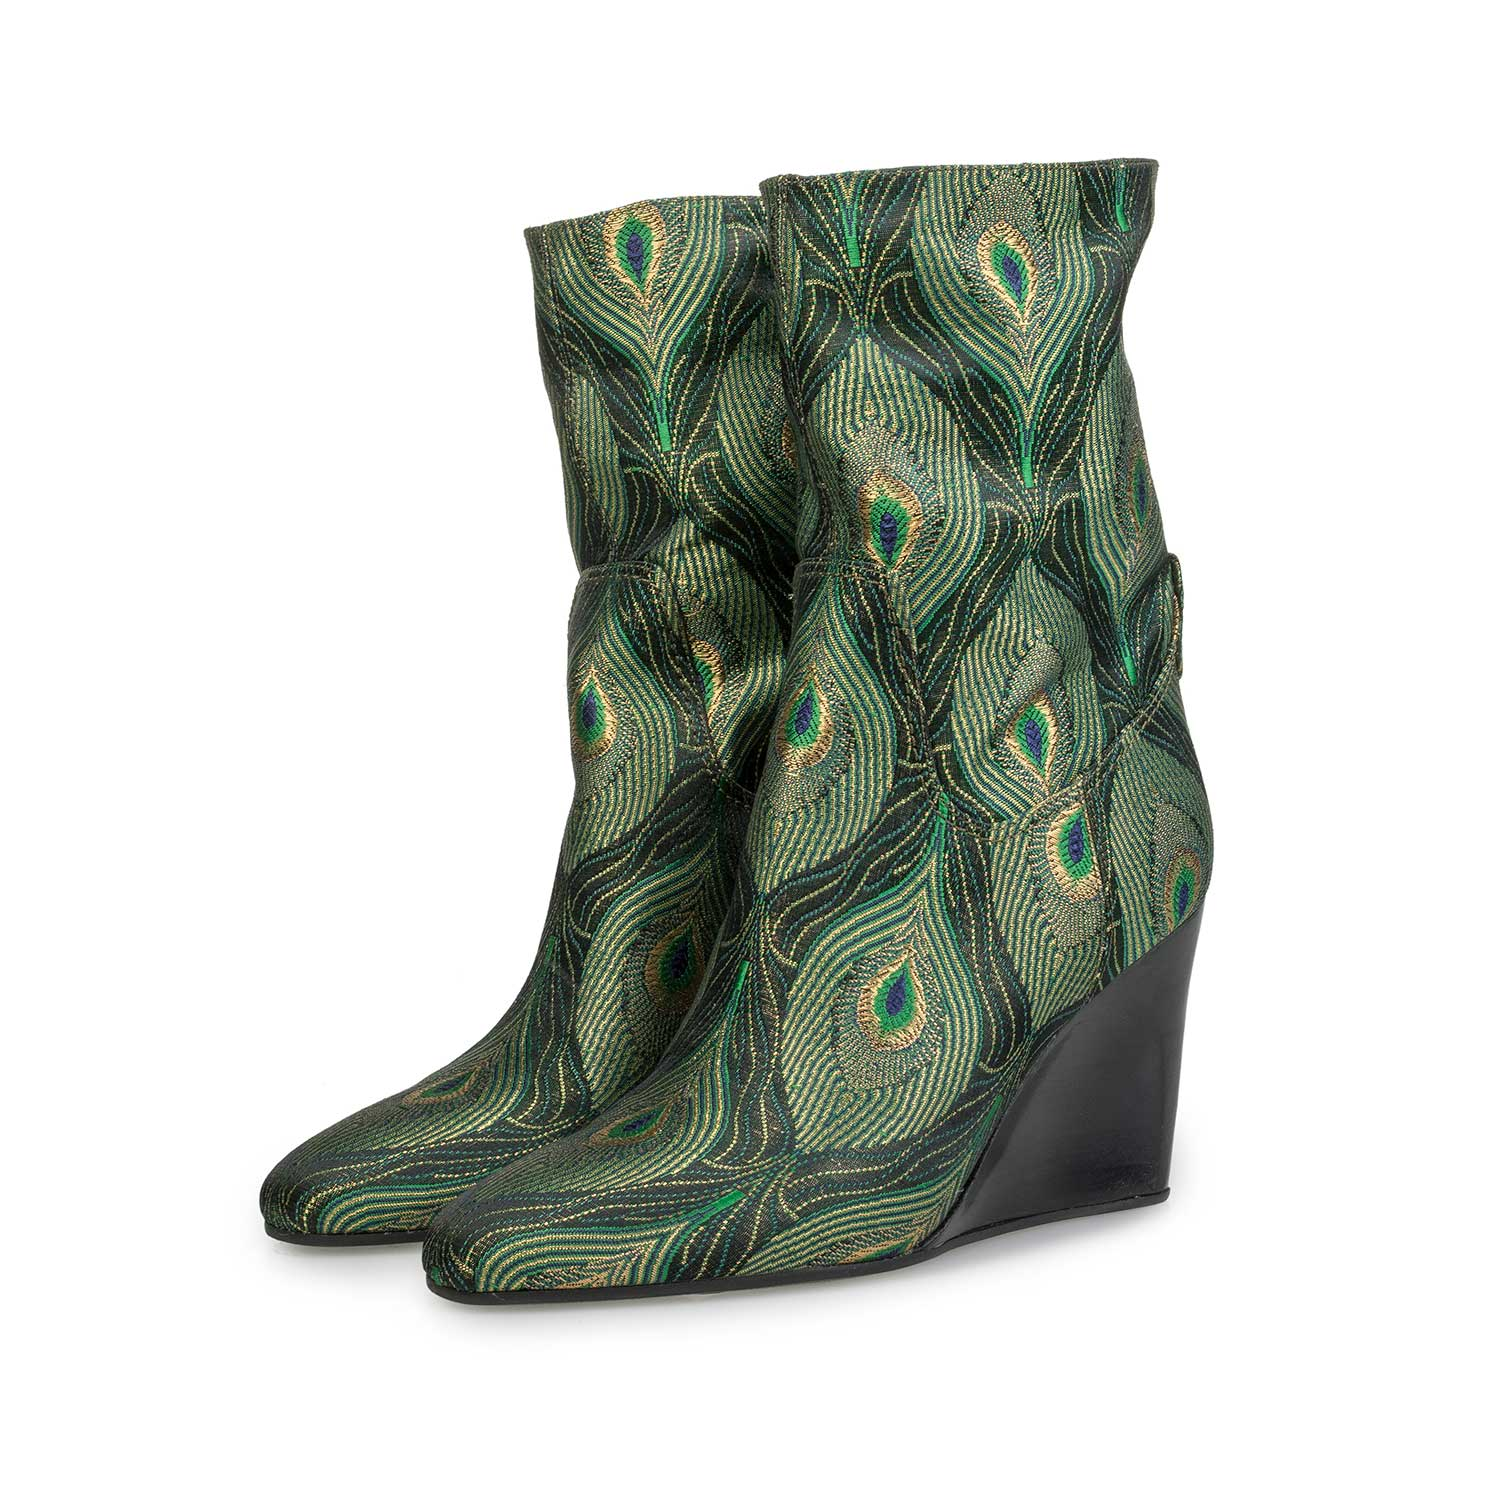 85707/02 - Mid-high boot with green peacock print